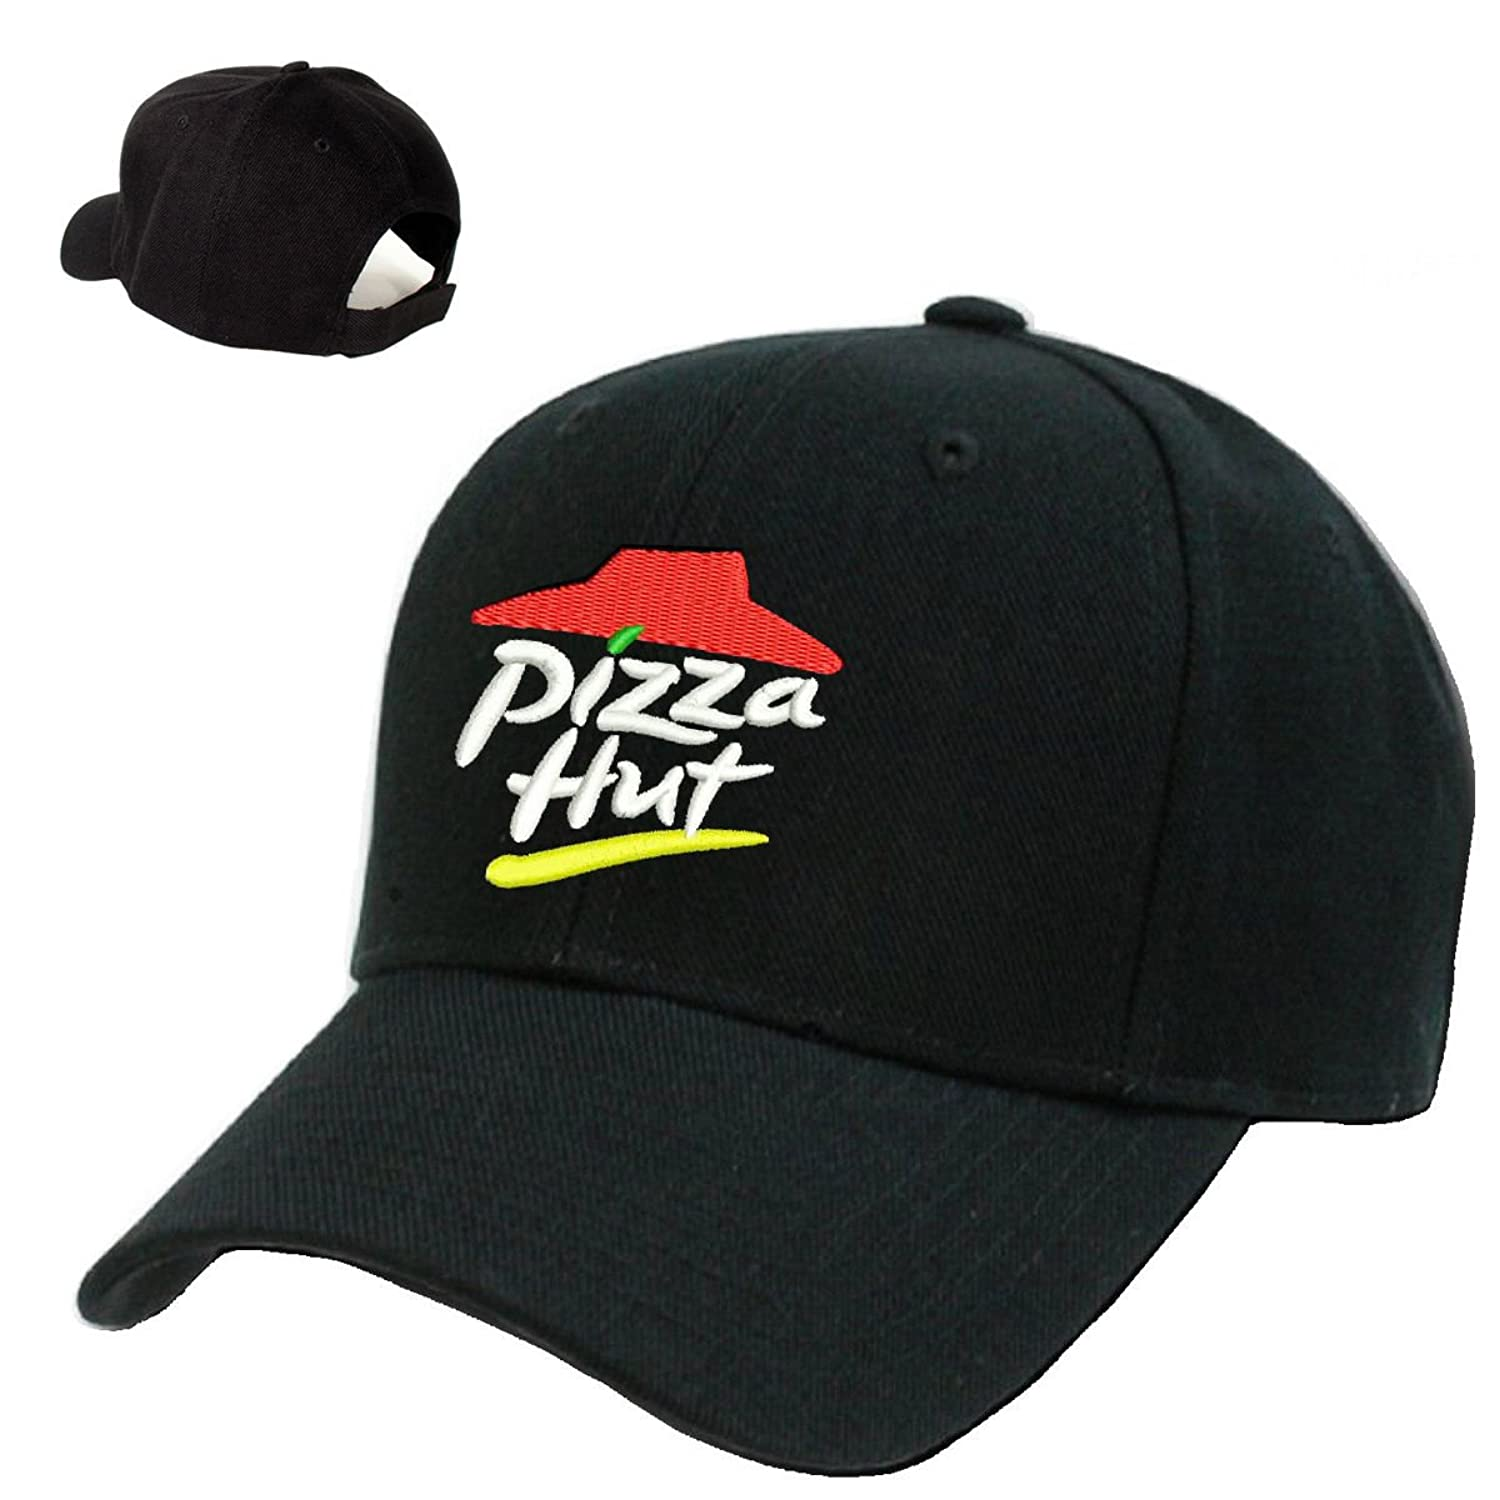 *PIZZA HUT* Black Embroidery Adjustable Baseball cap Souvenier Gift Unique  Hat at Amazon Men's Clothing store: